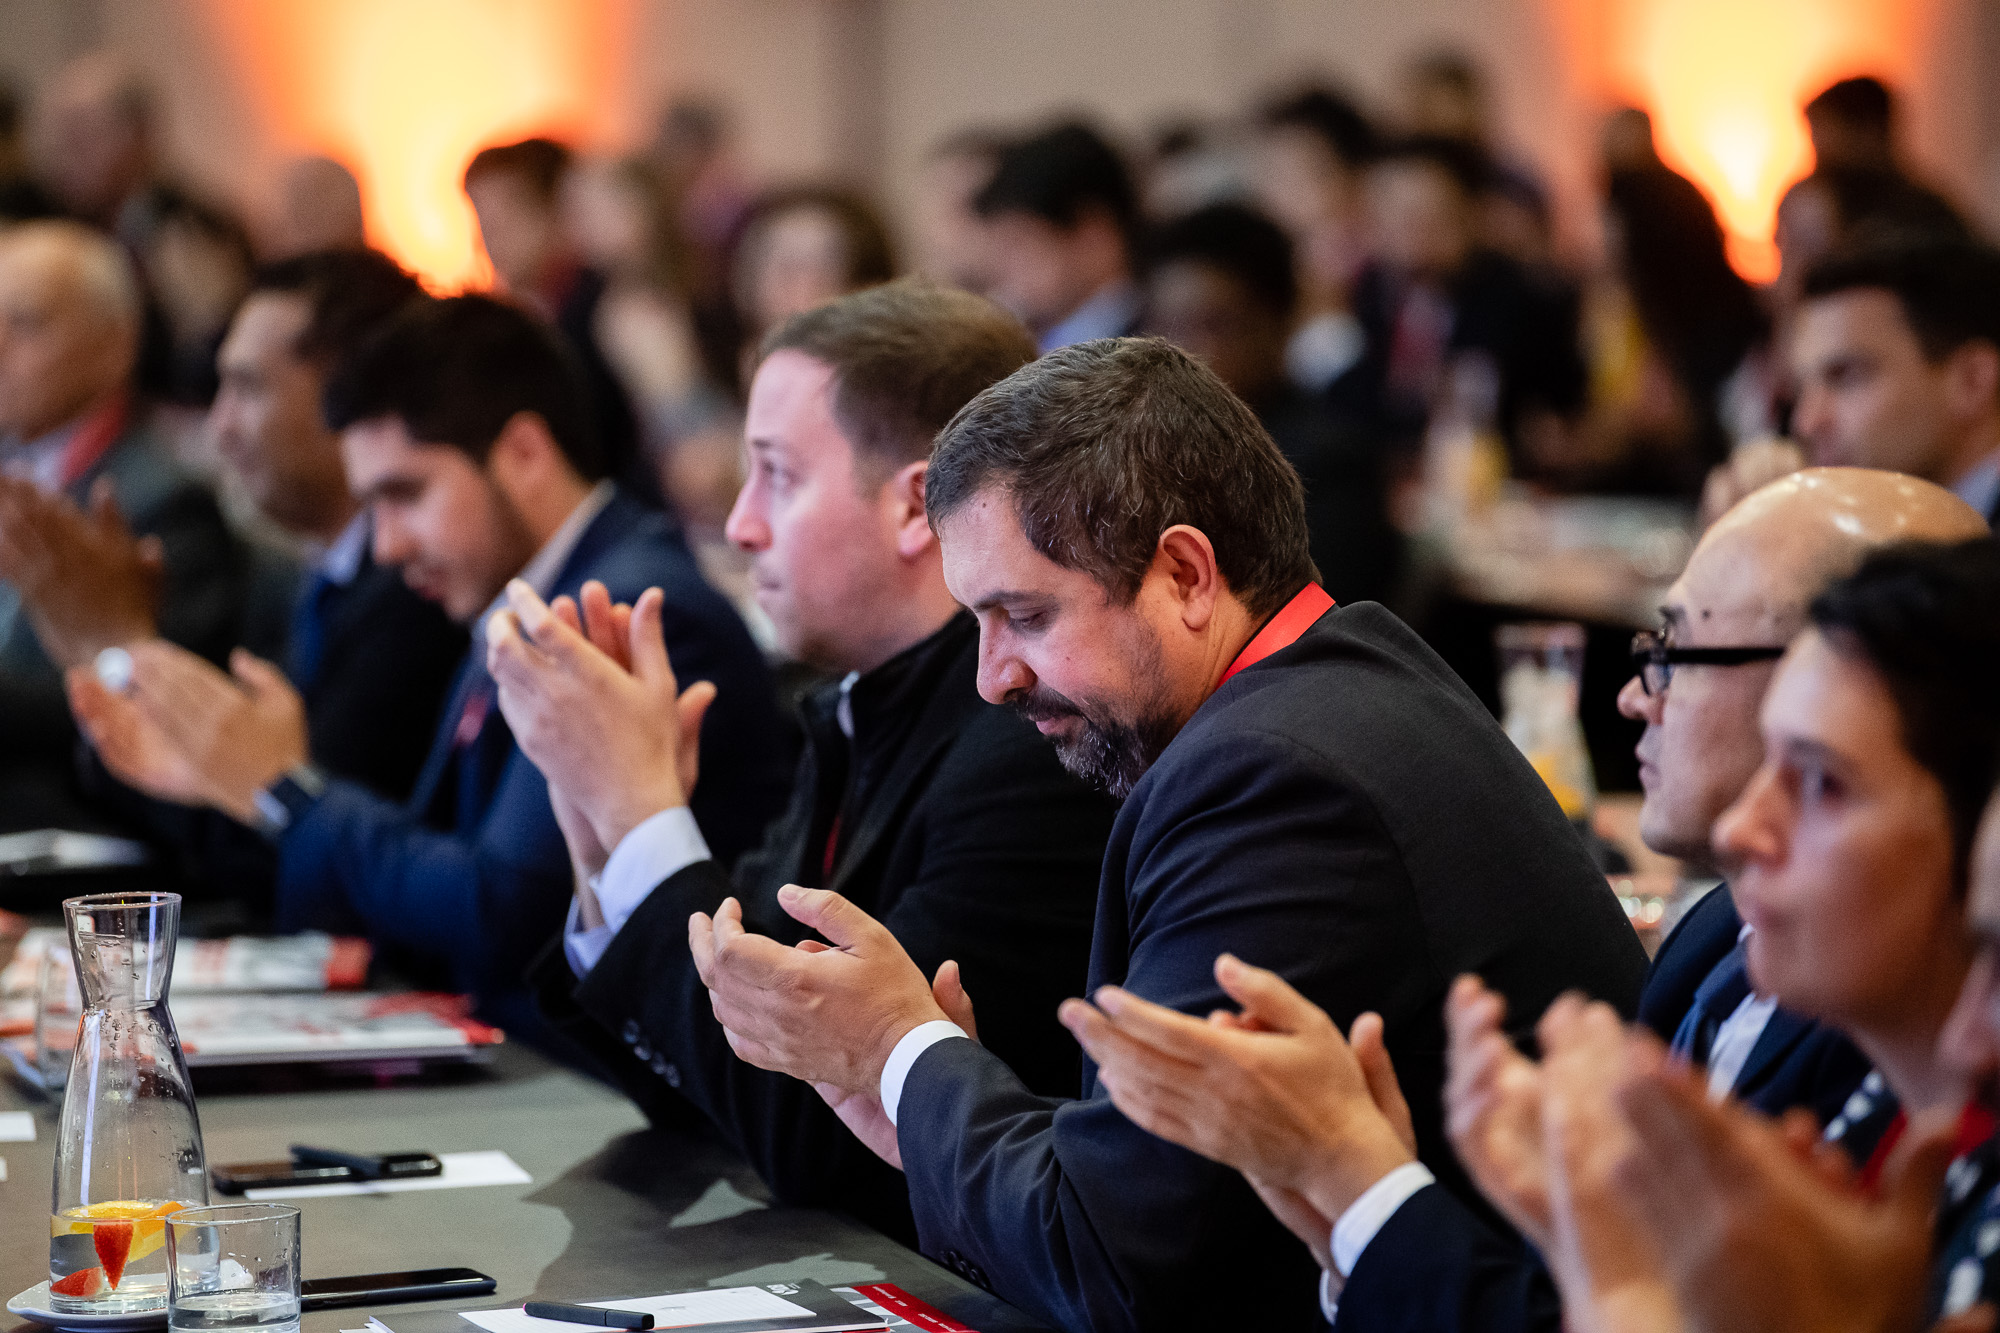 Attendees-clapping-056-GEOLAC_SANTIAGO